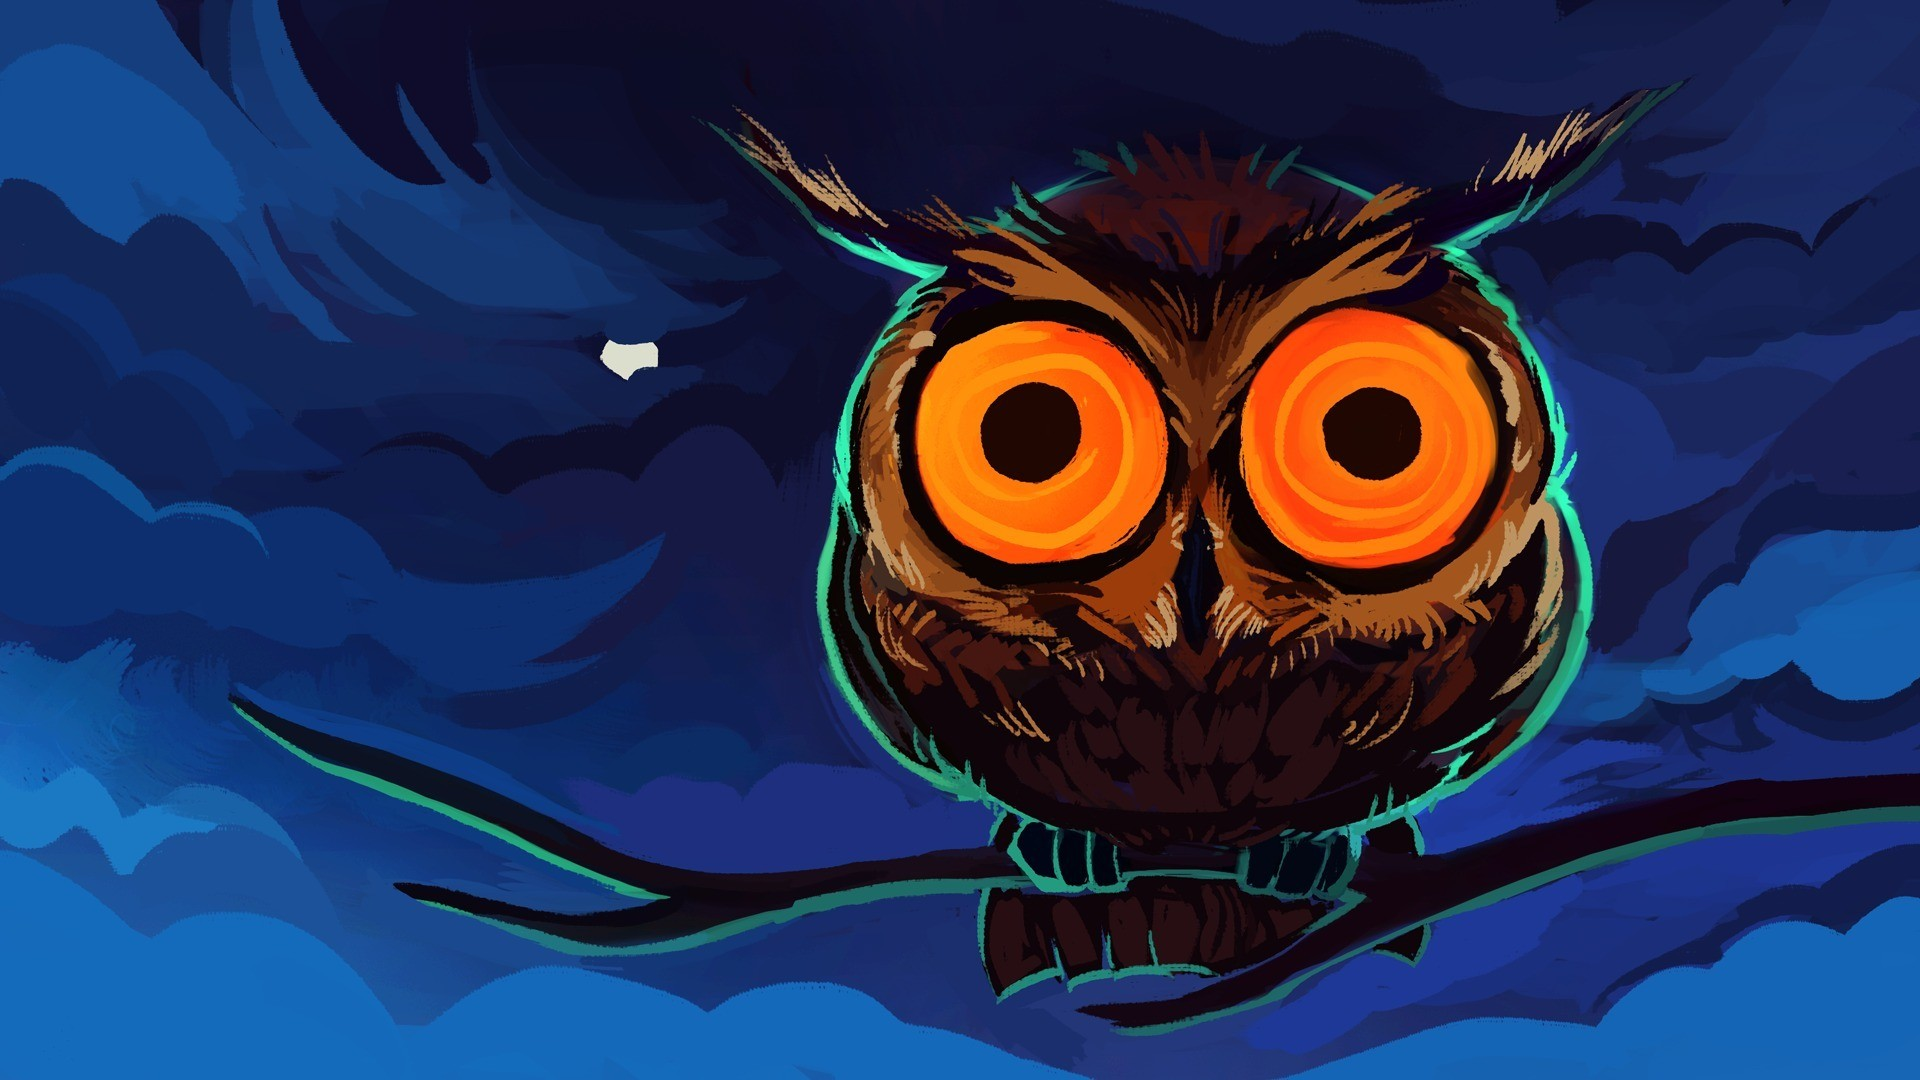 Painted owl with round eyes